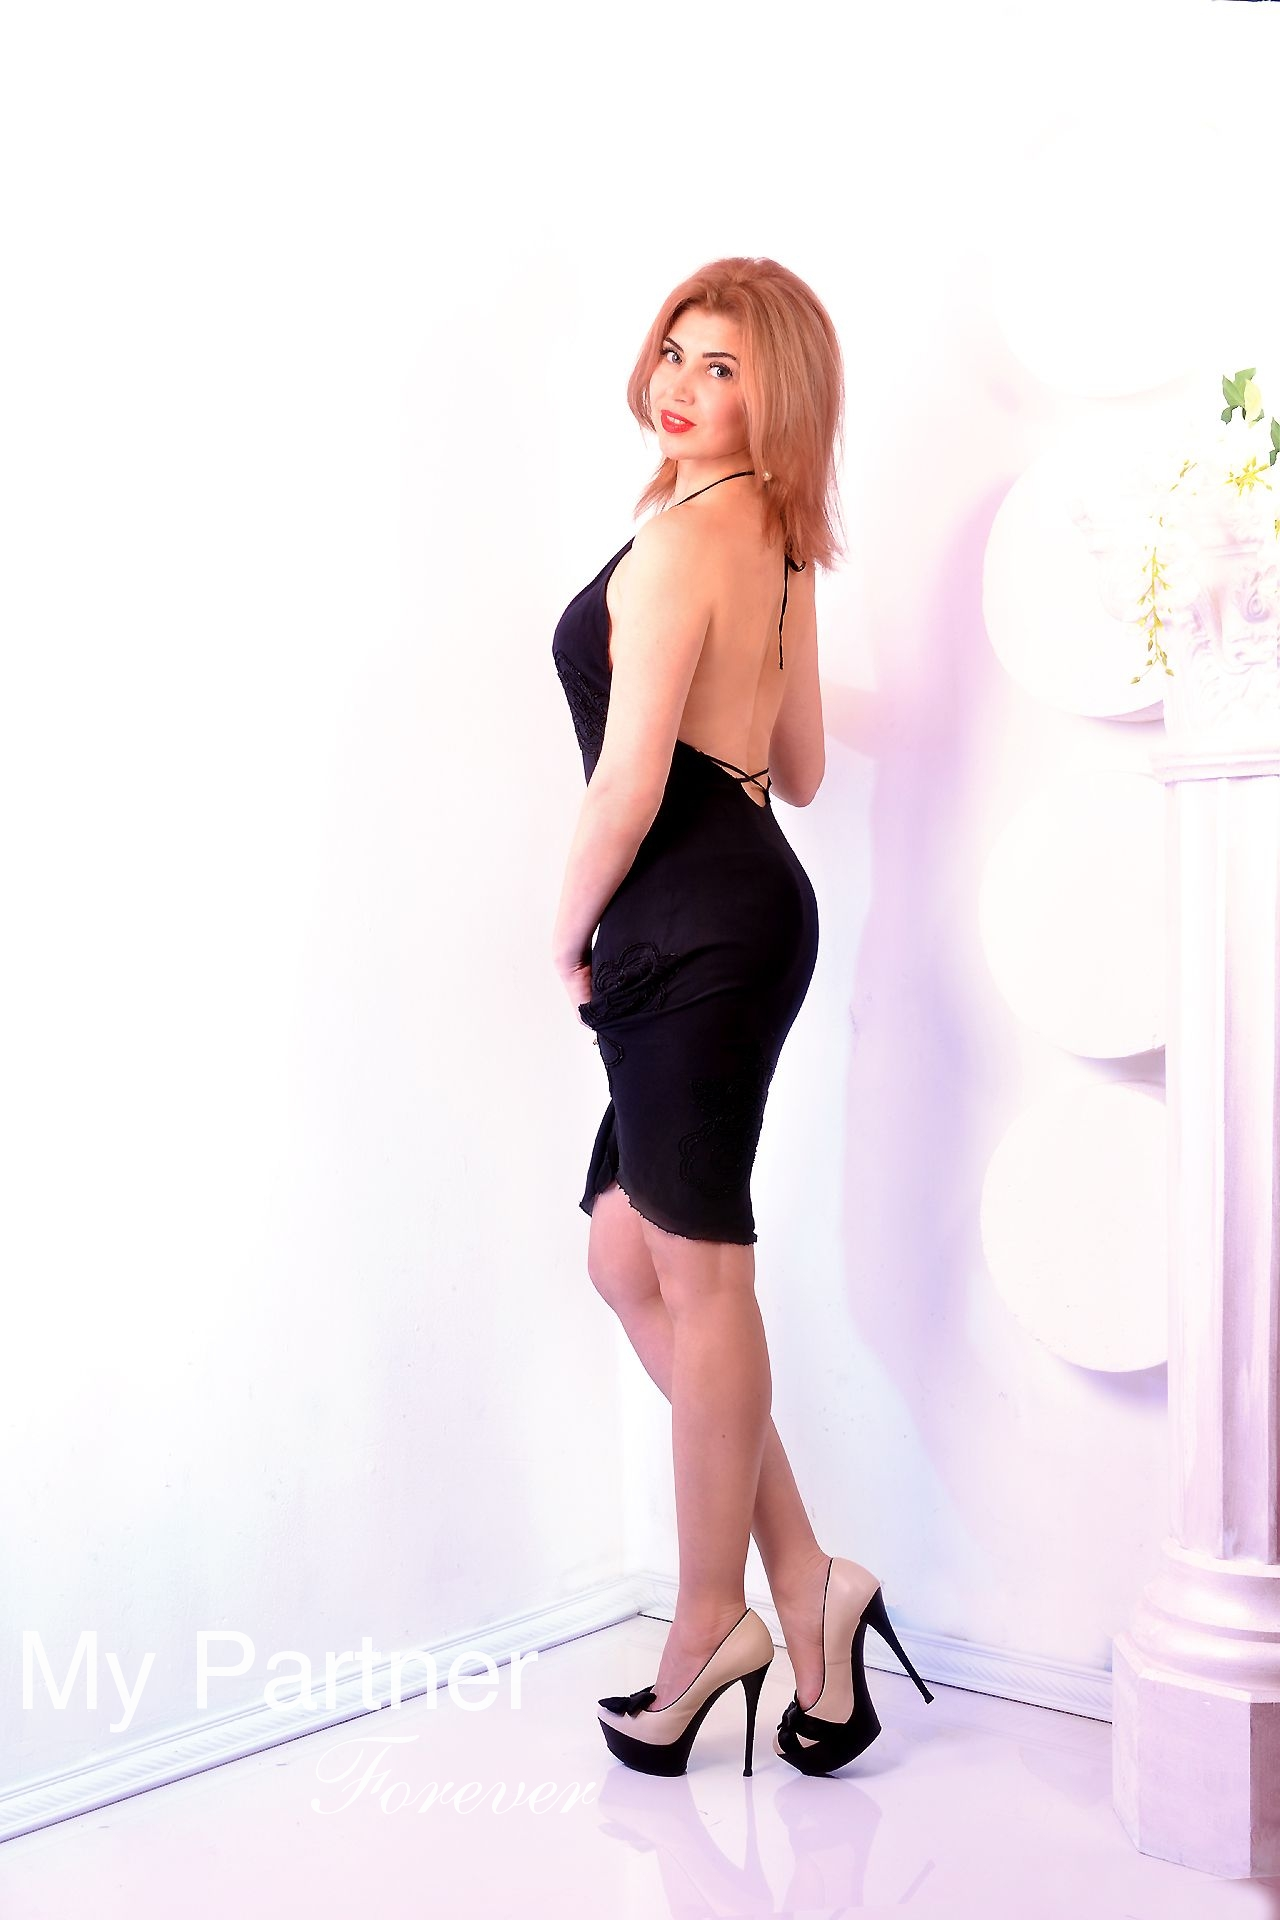 Dating Site to Meet Beautiful Ukrainian Woman Alina from Kharkov, Ukraine